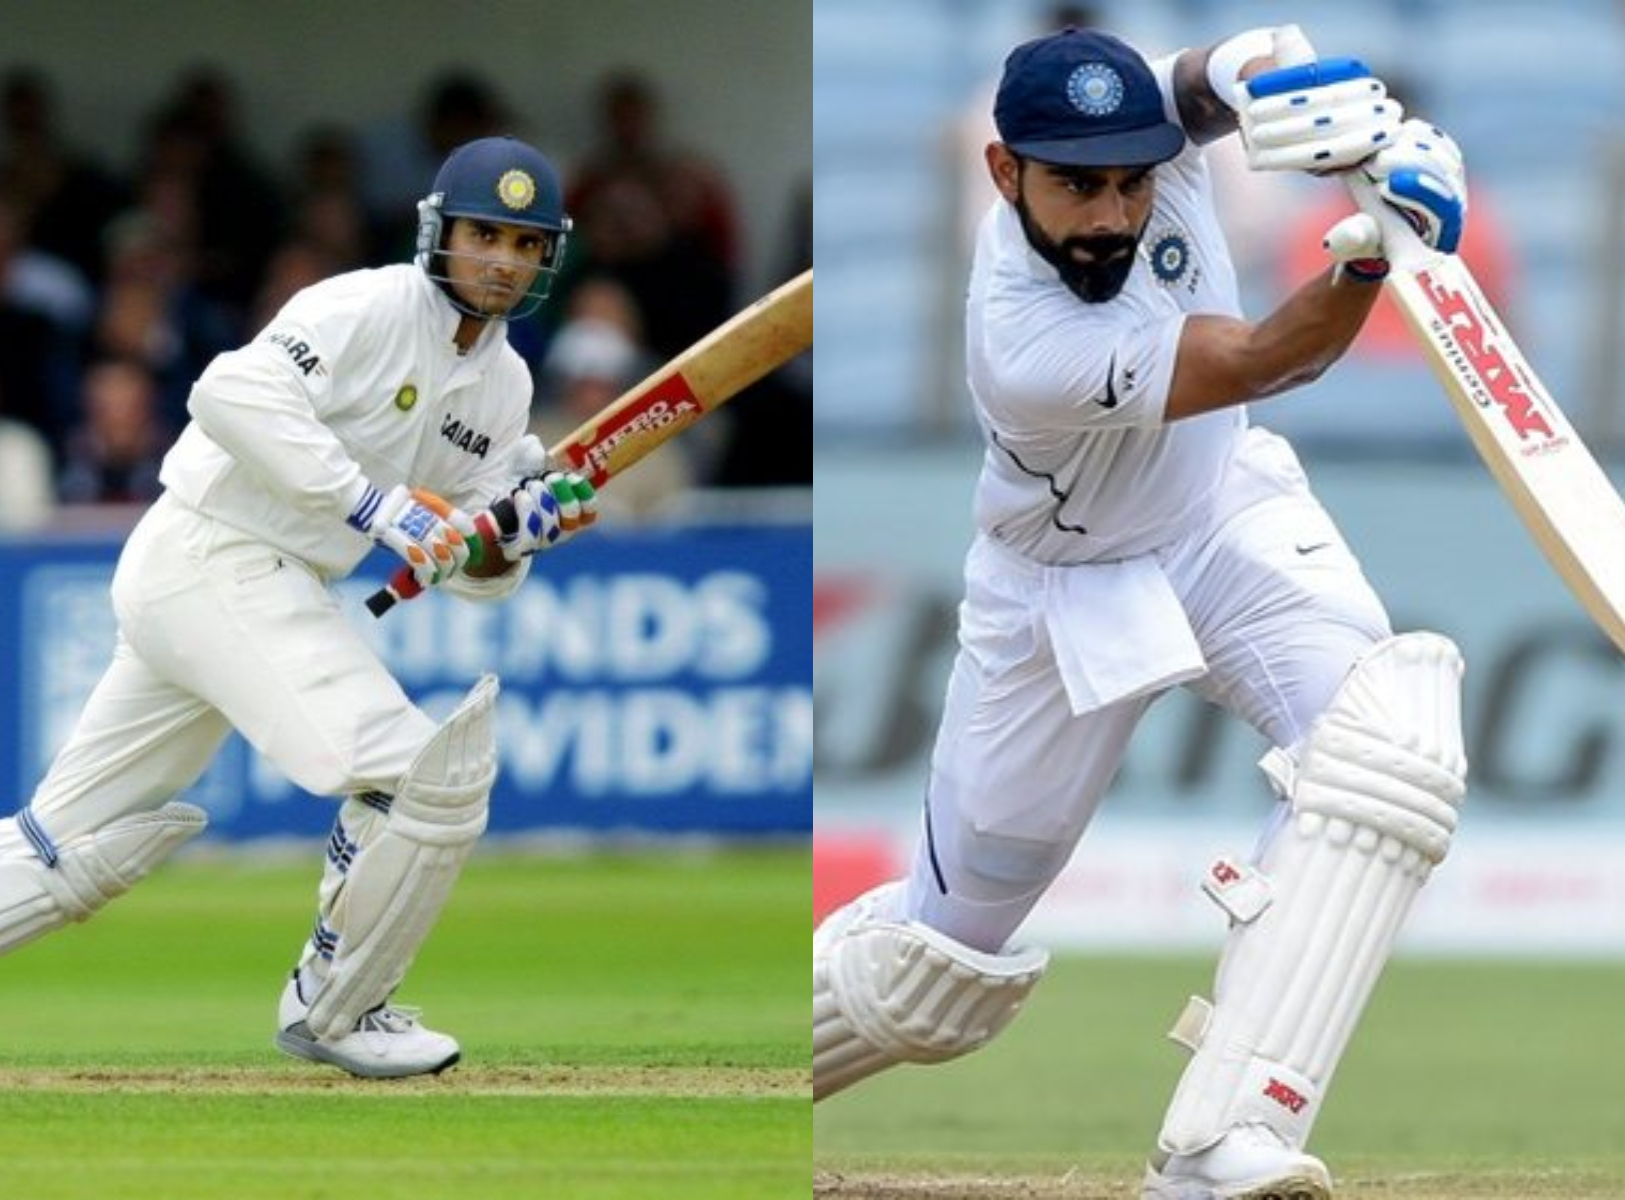 Both Ganguly and Kohli are amazing batsmen in their own rights apart from being excellent captains